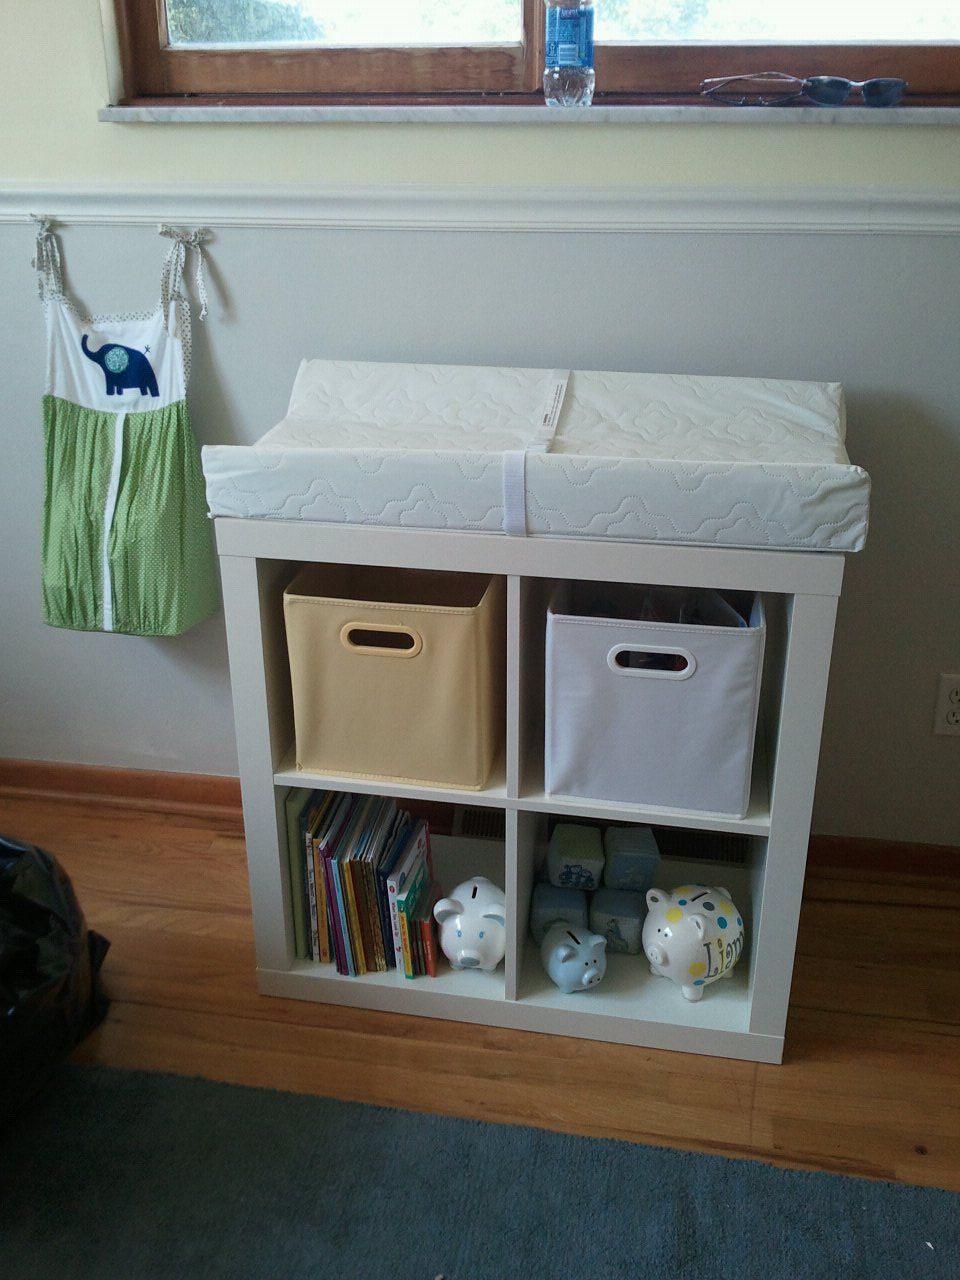 ikea shelf changing table | preschool: environment | pinterest